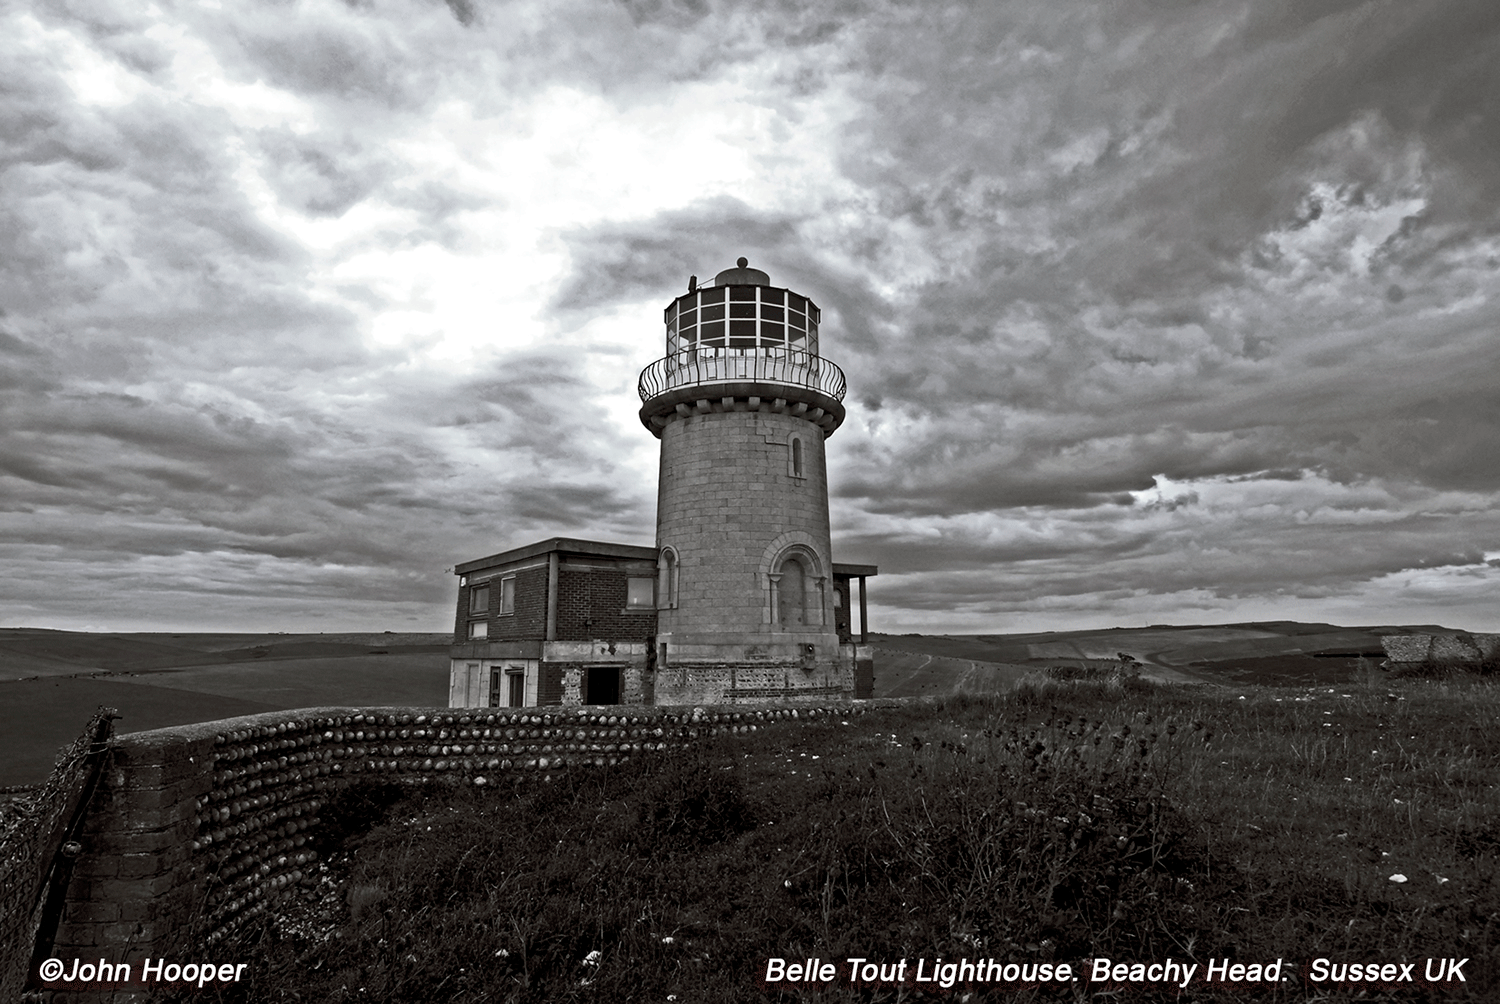 Belle Toute Lighthouse